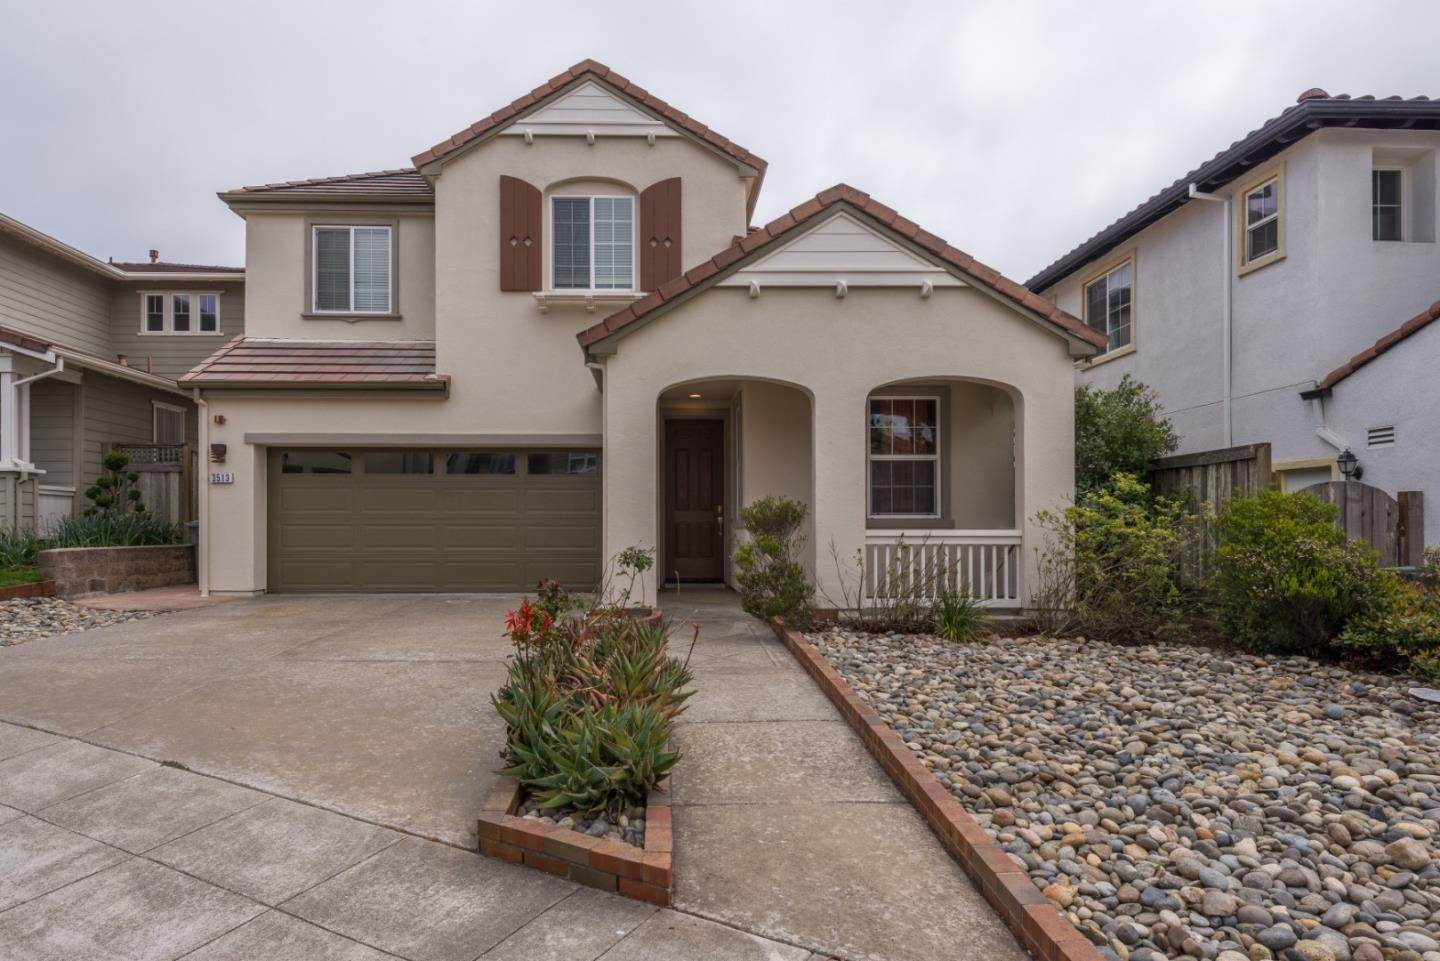 Single Family Homes for Sale at 3513 Bering Drive San Bruno, California 94066 United States